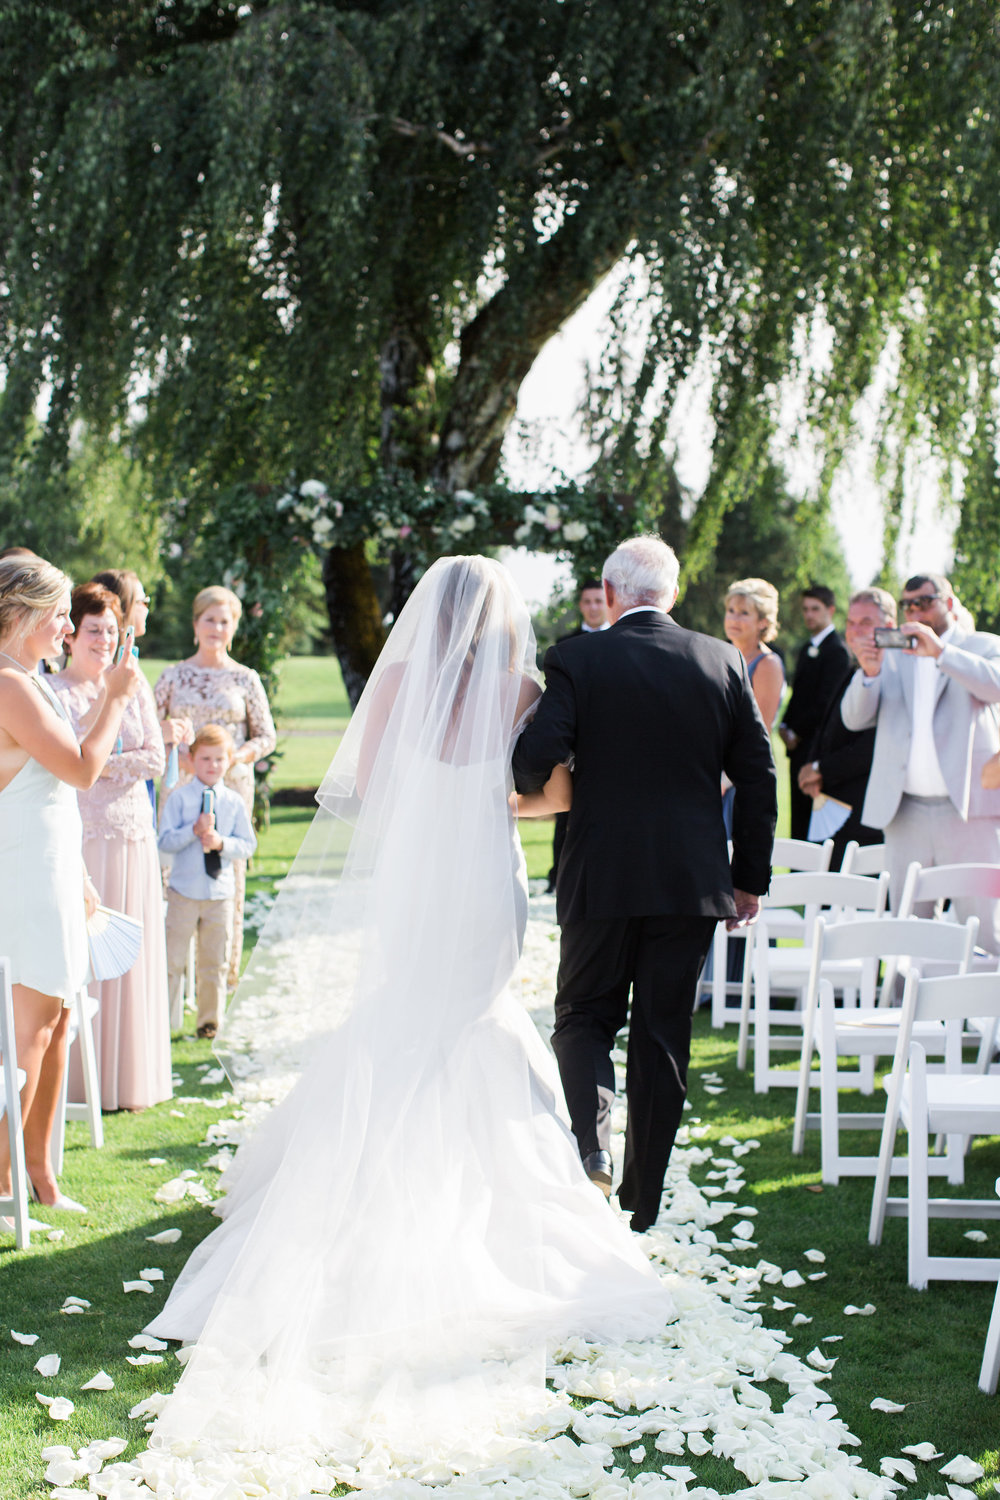 Bridalbliss.com | Eugene Wedding | Oregon Event Planning and Design | Amanda K Photography | Blum Floral